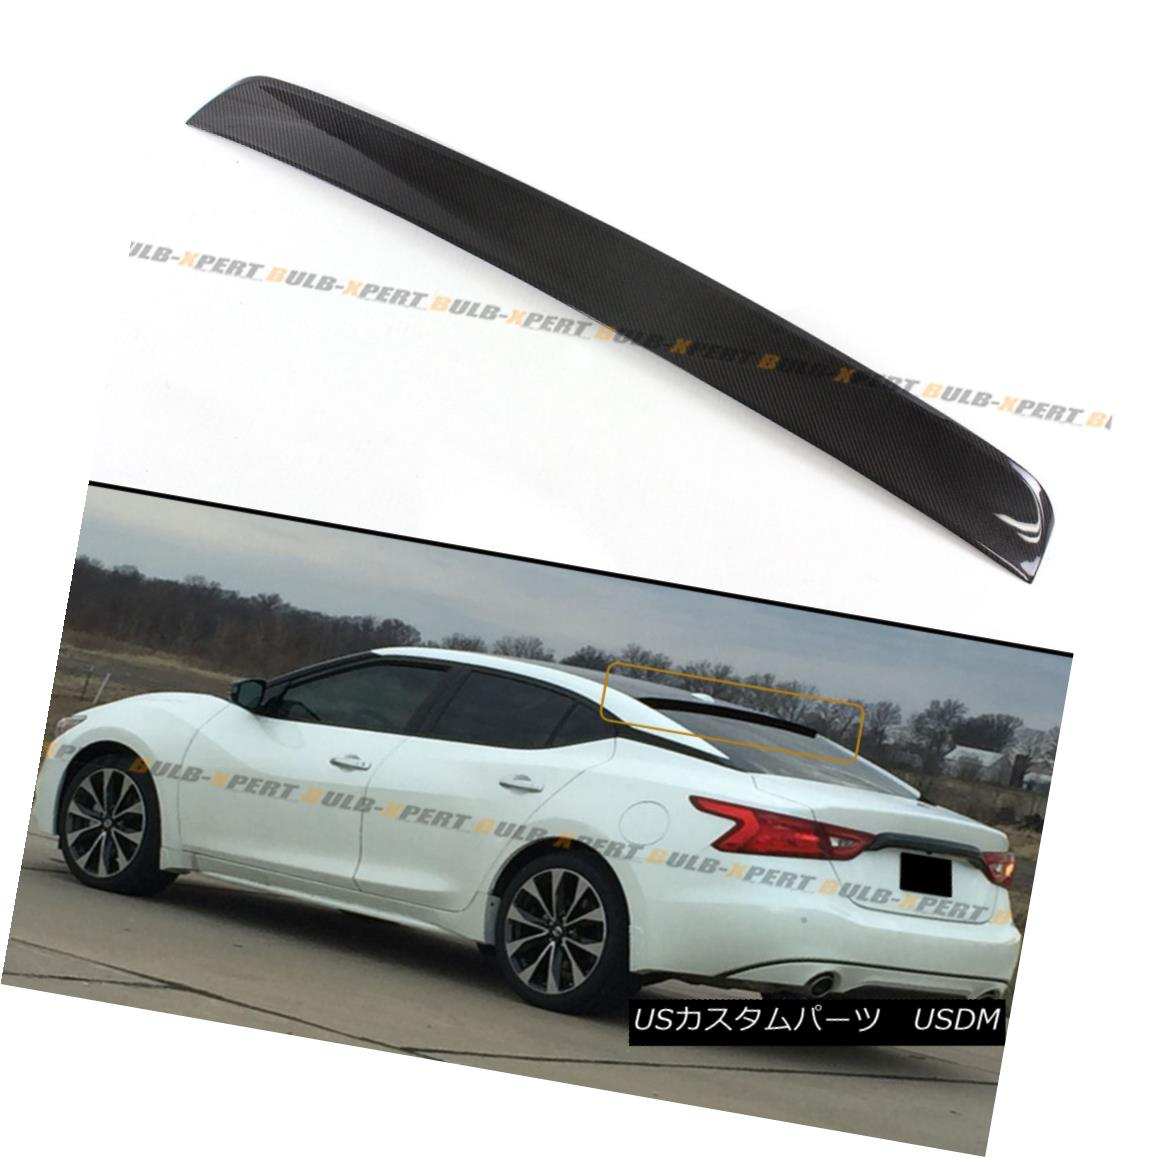 エアロパーツ FOR 2016-18 8TH NISSAN MAXIMA JDM CARBON FIBER REAR WINDOW ROOF SPOILER LID WING NISSAN MAXIMA JDM CARBON FIBER REAR WINDOW ROOF SPOILERライドウイング